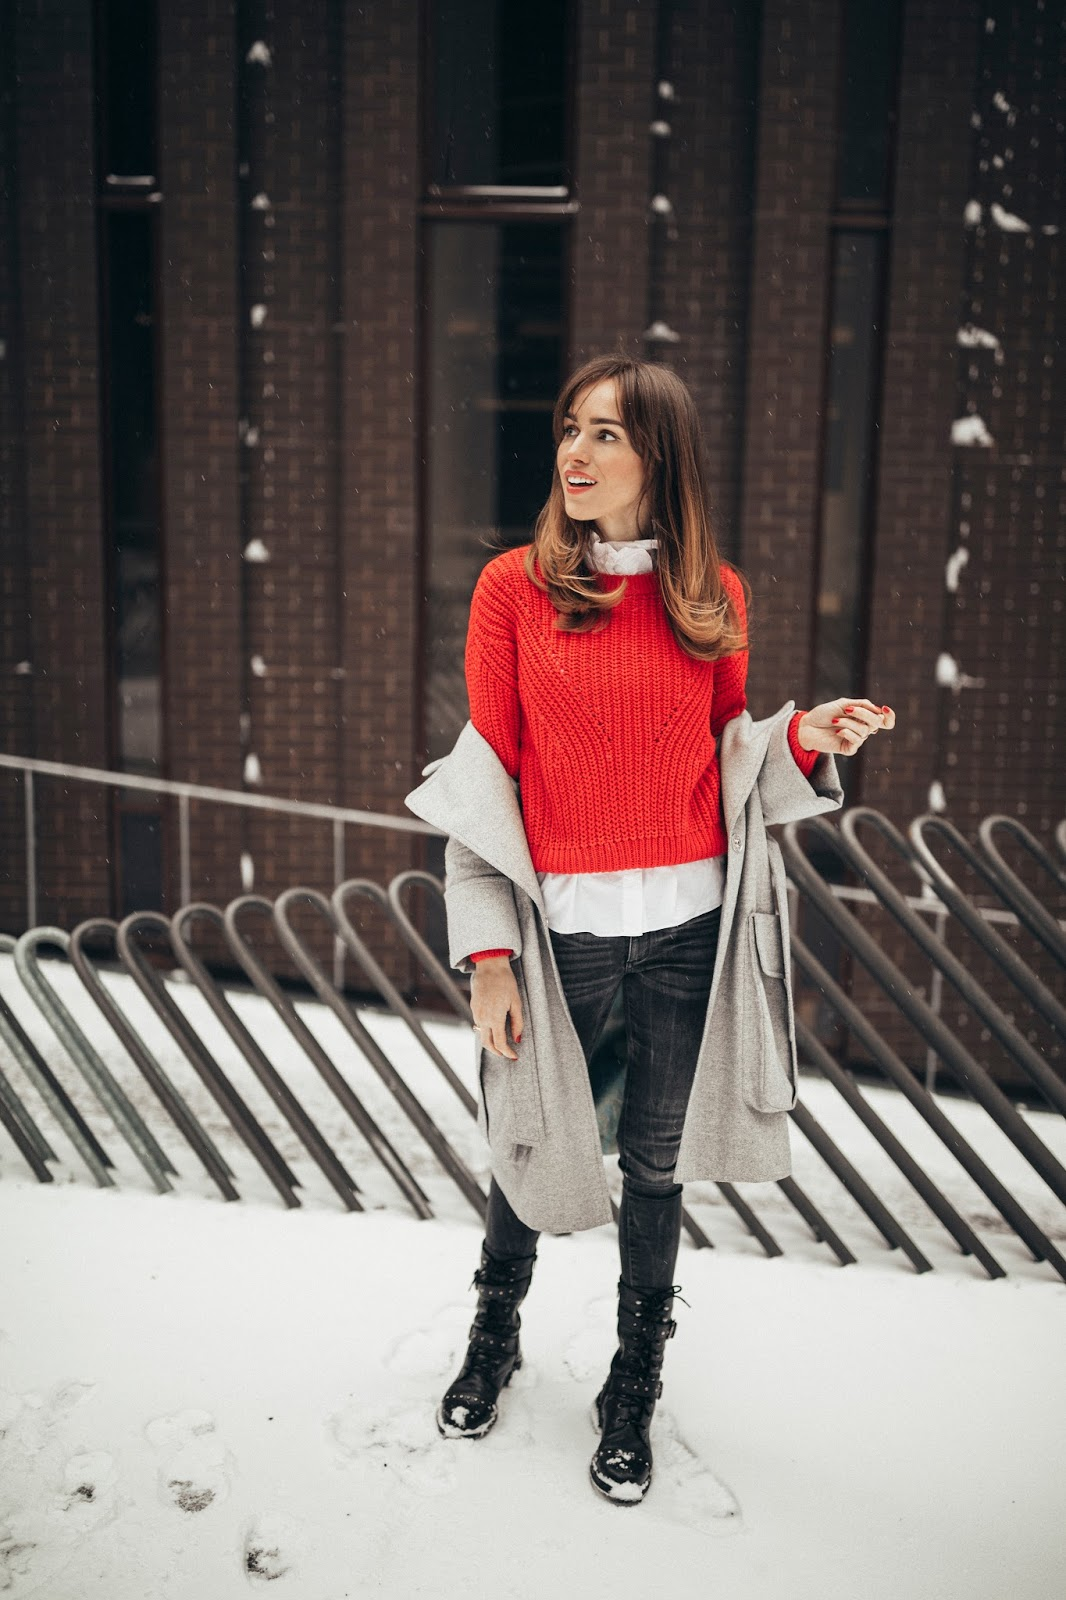 red jumper white shirt jeans combat boots outfit